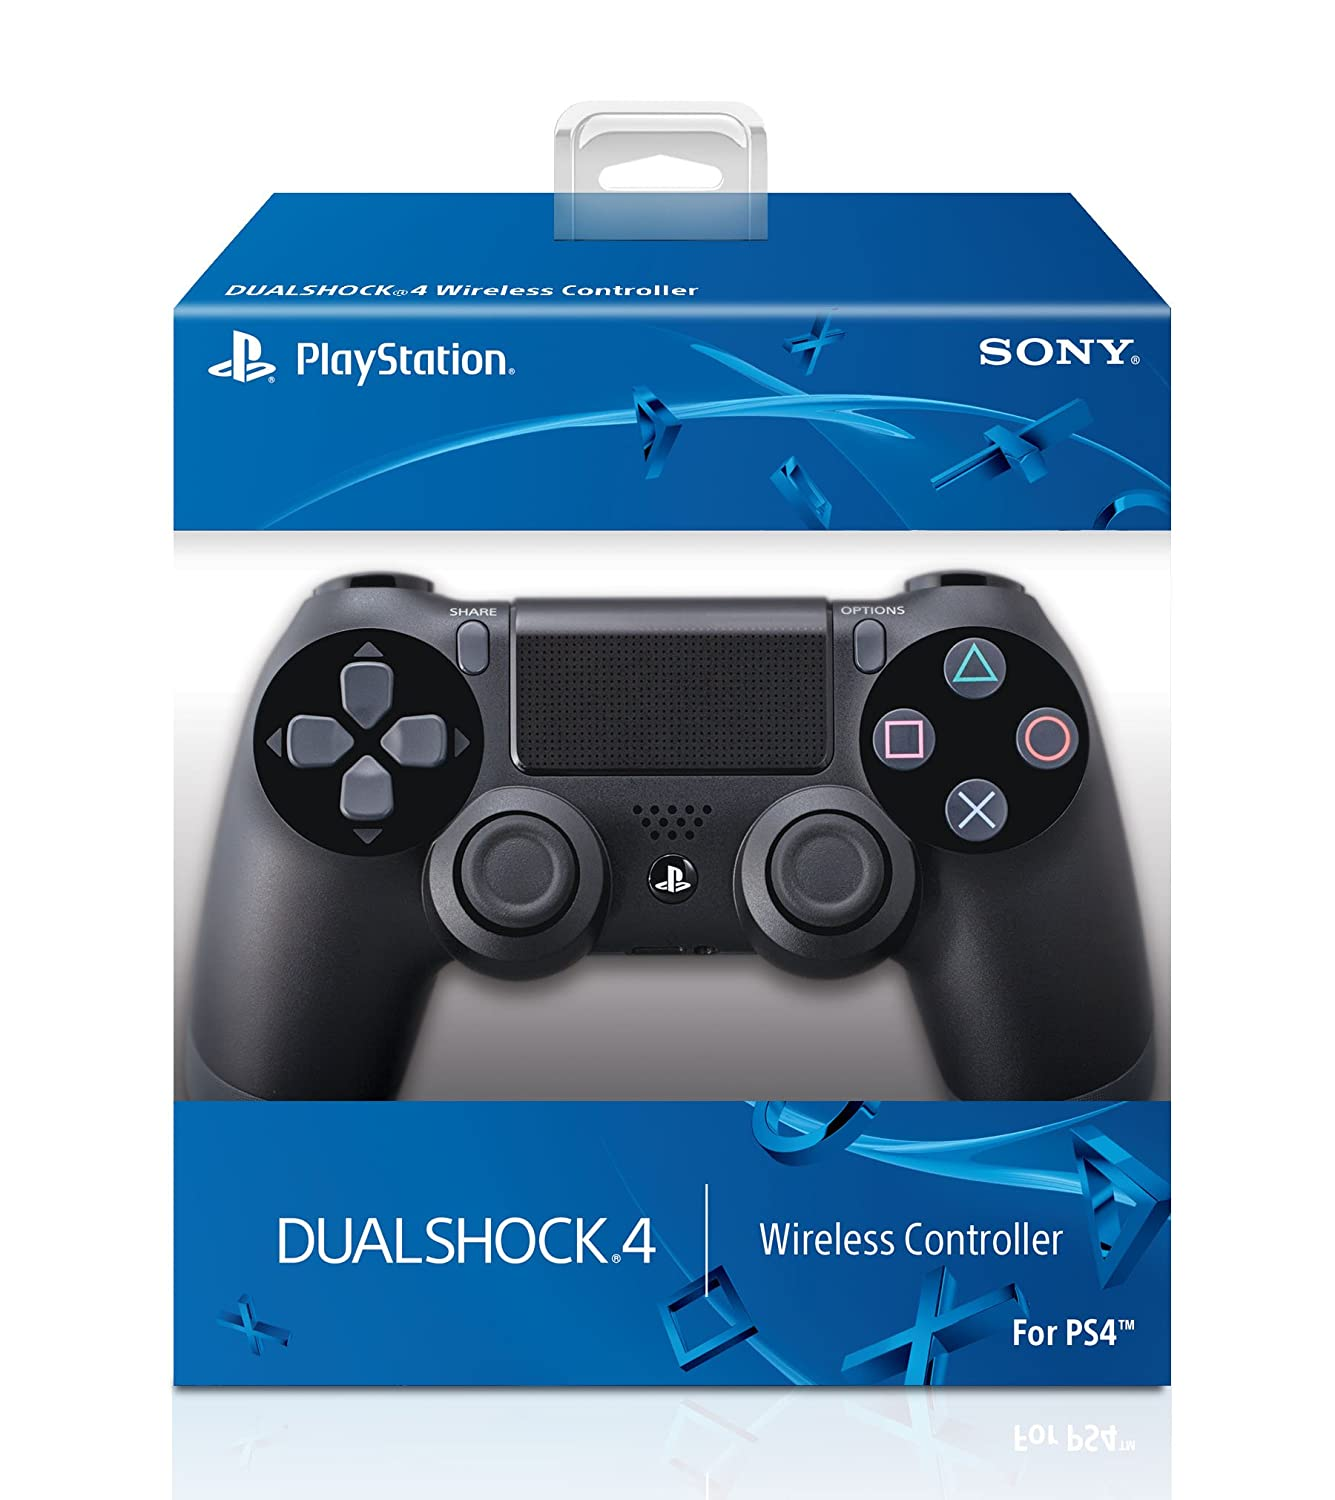 DualShock 4 Wireless Controller (PS4)